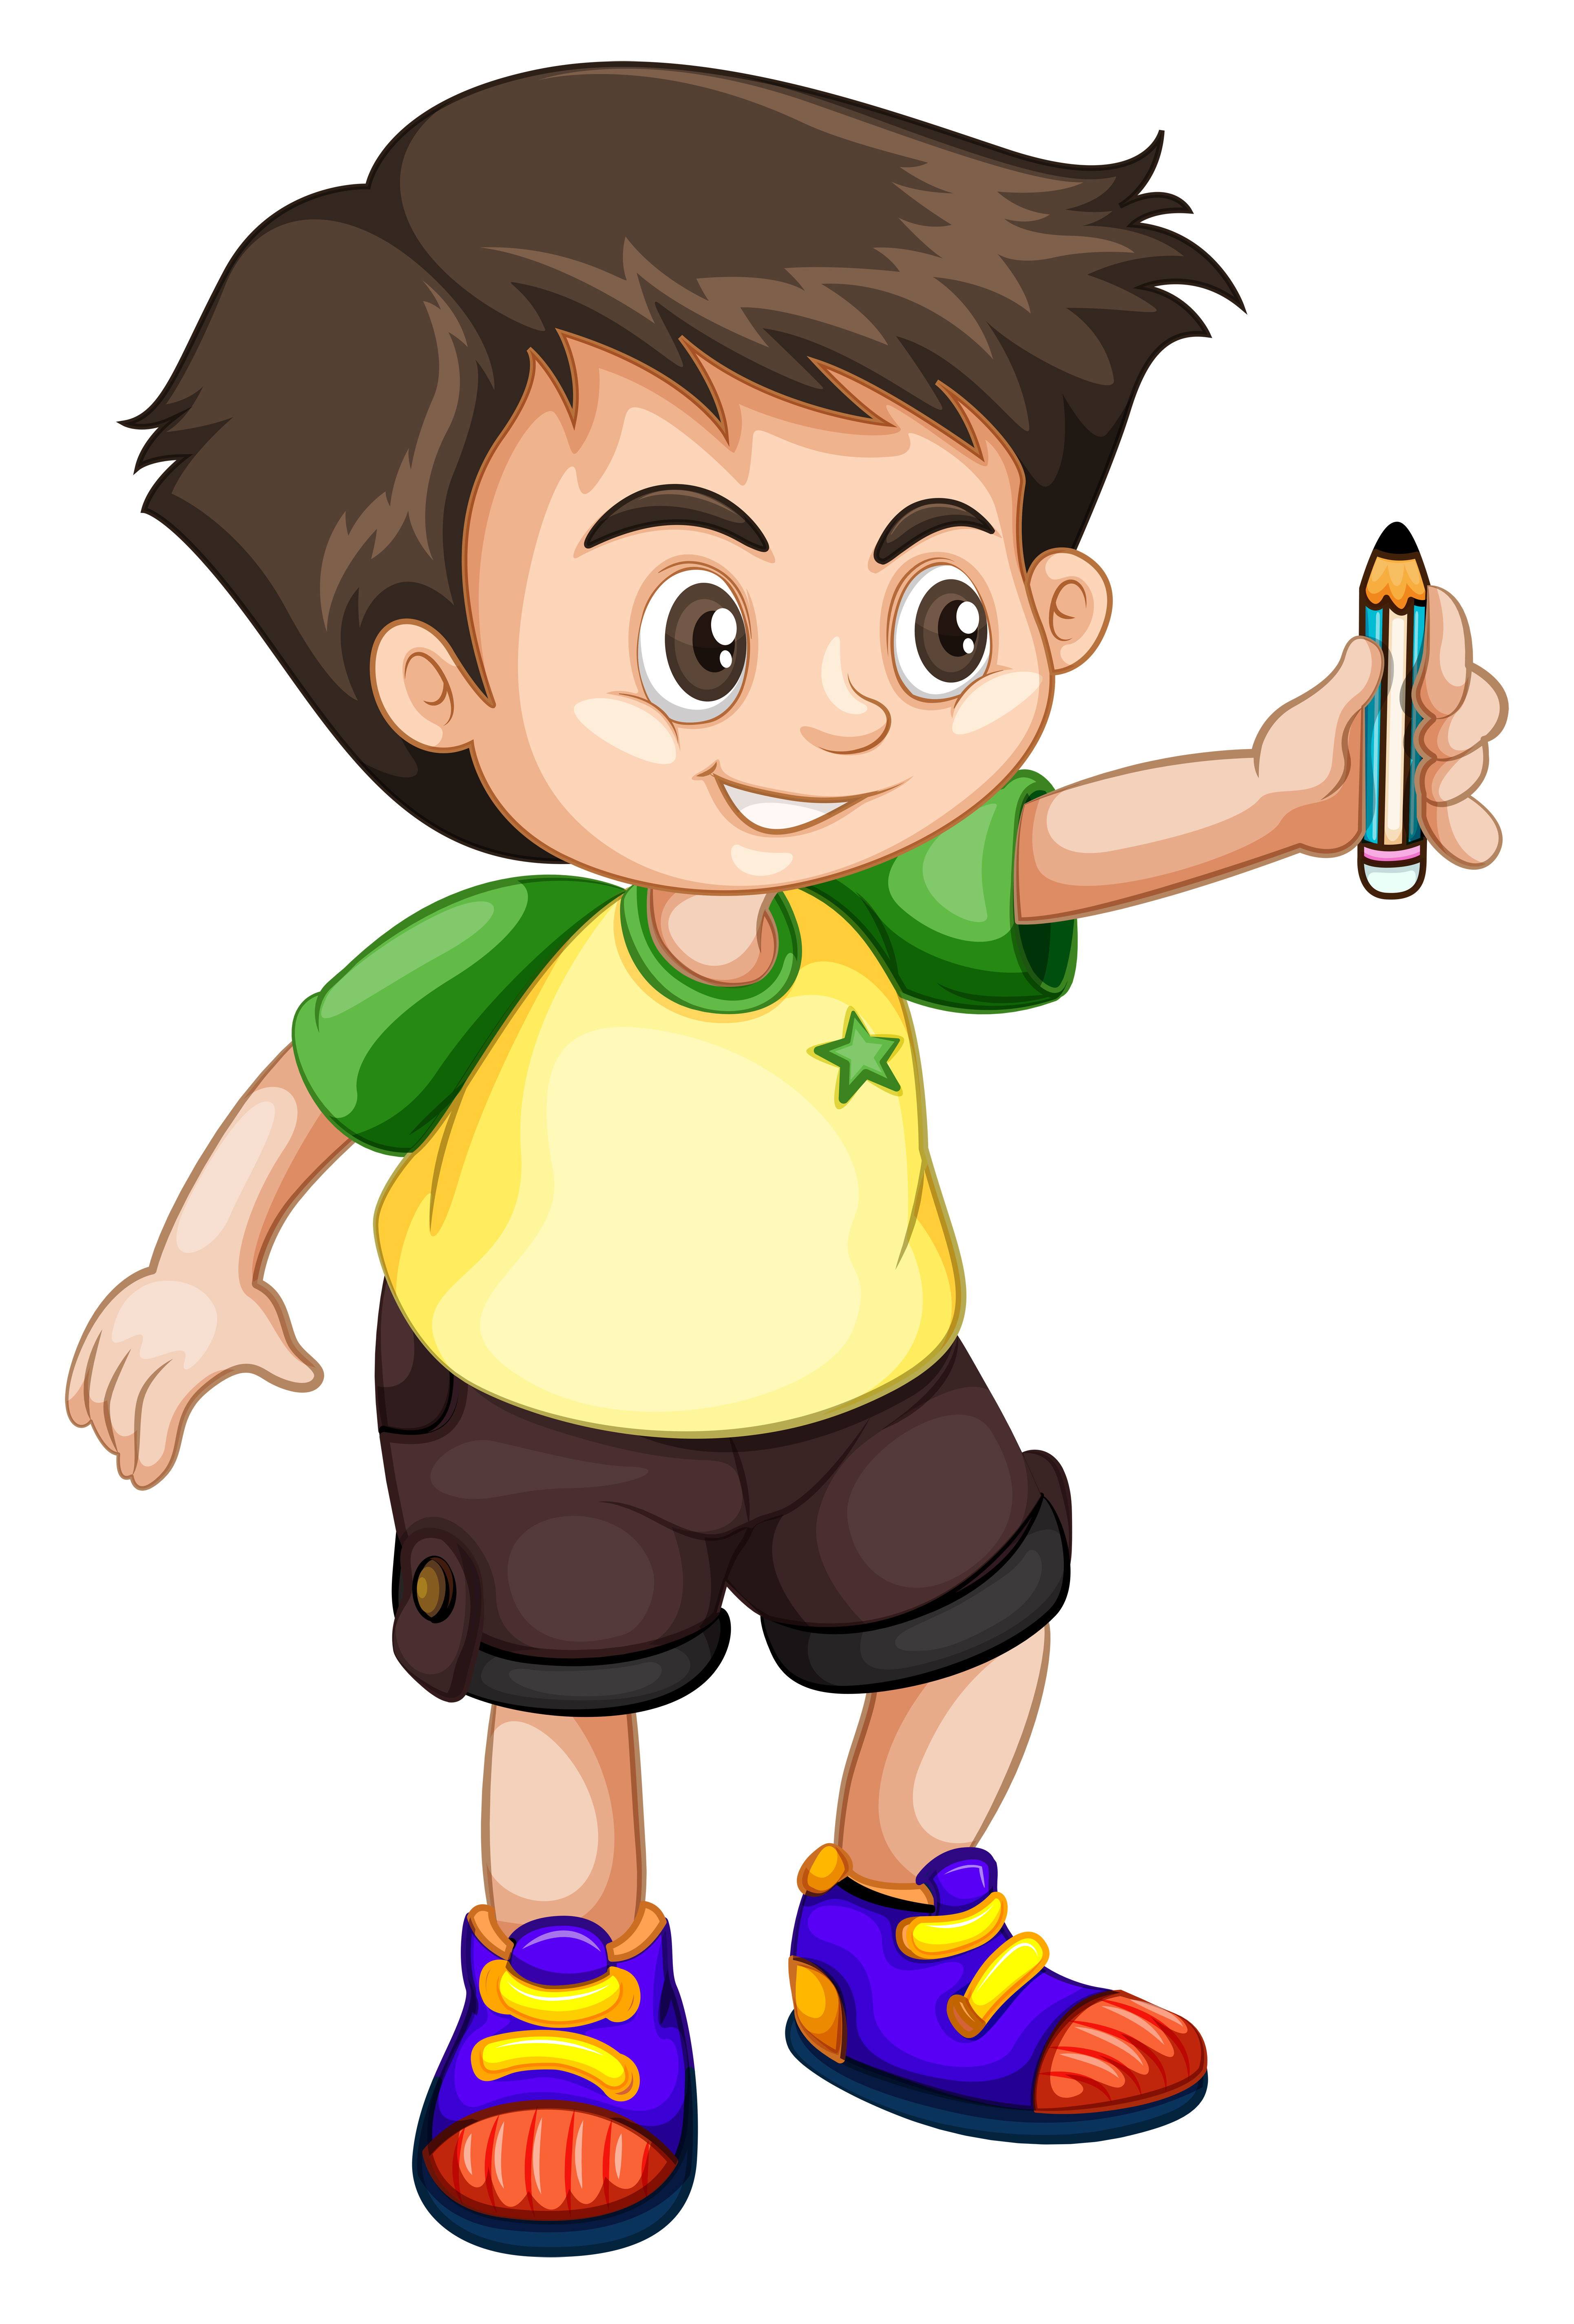 Young kid holding a pencil